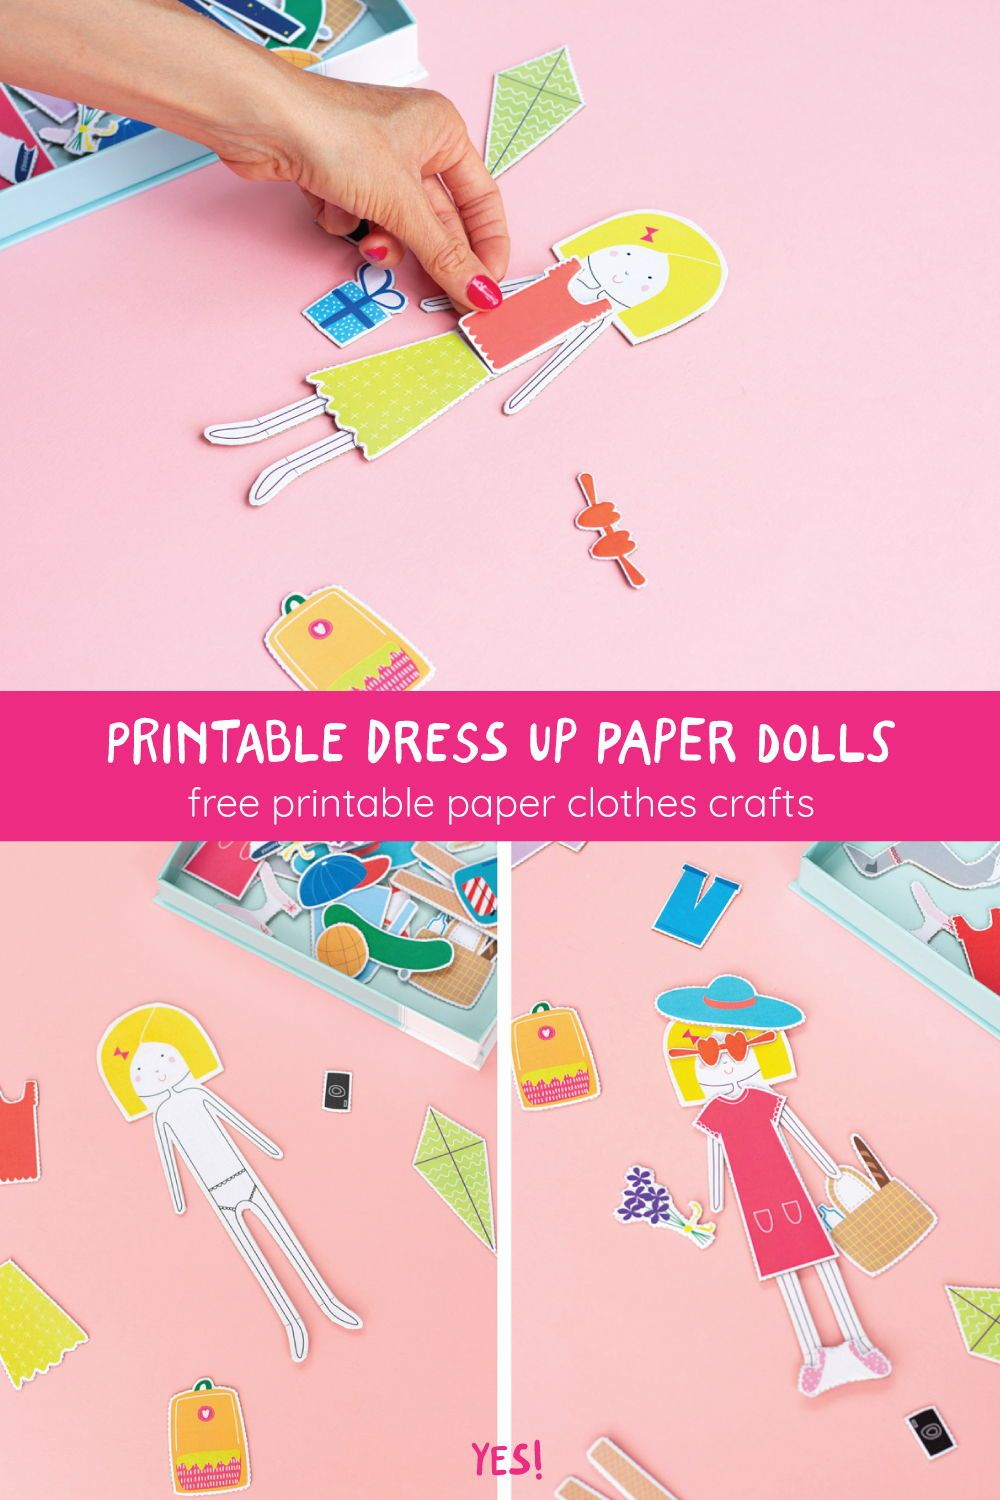 Printable Dress up Paper Doll Template - YES! we made this -   14 dress DIY free printable ideas